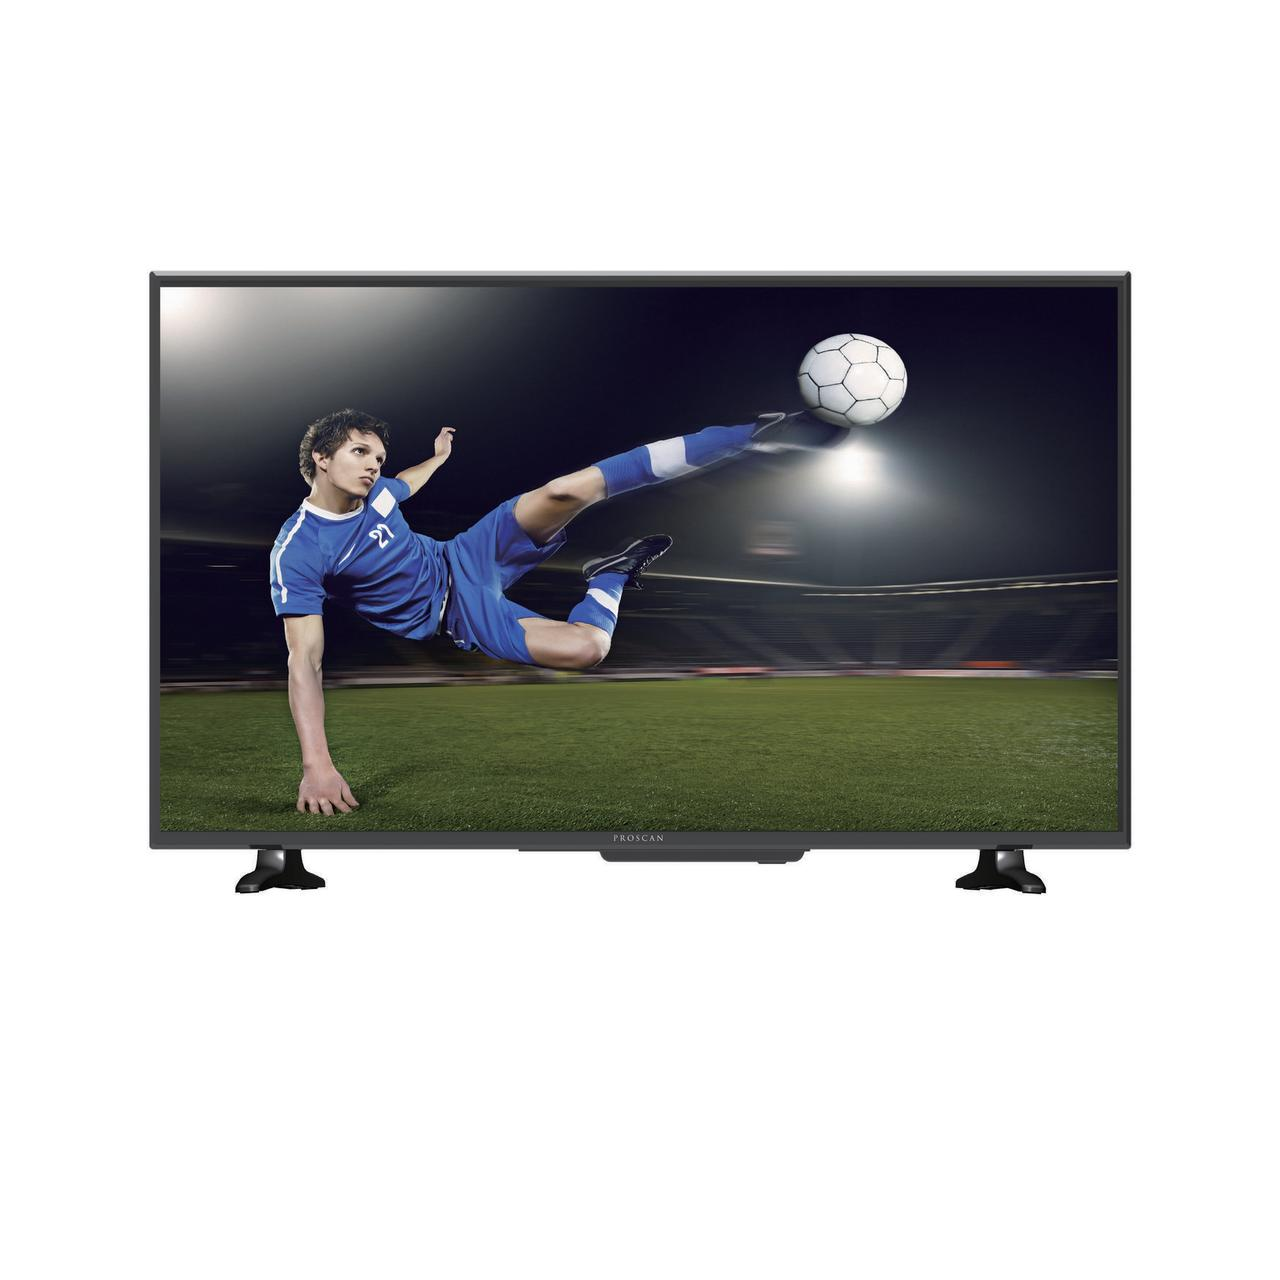 Proscan 32 Inch 720p LED TV